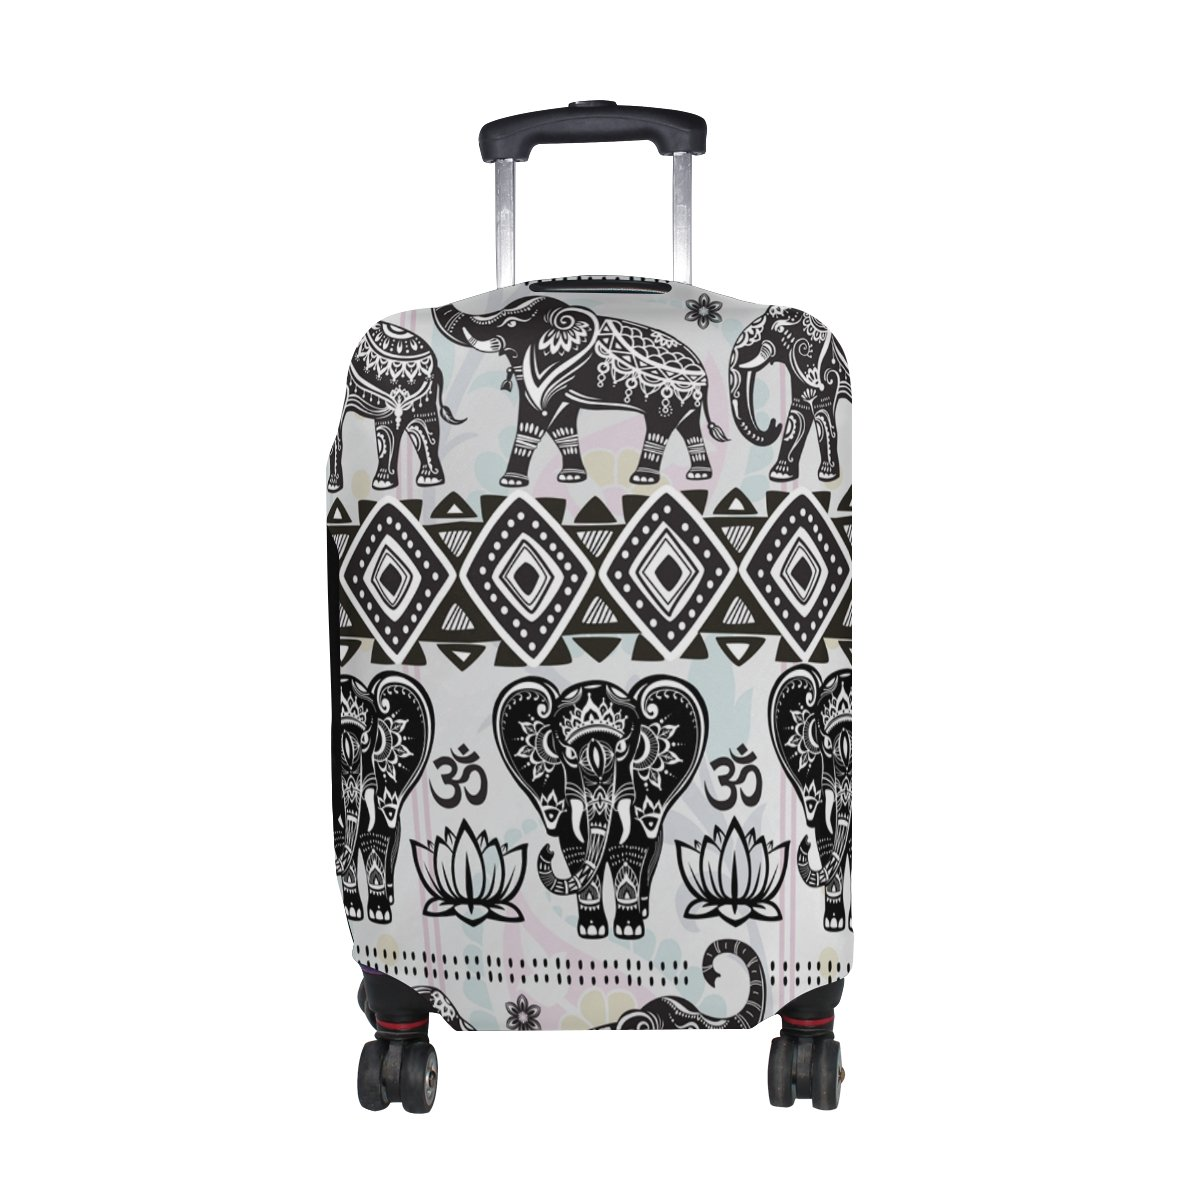 Hippie Indian Elephant Mandala Luggage Cover Travel Suitcase Protector Fits 29-32 Inch Luggage